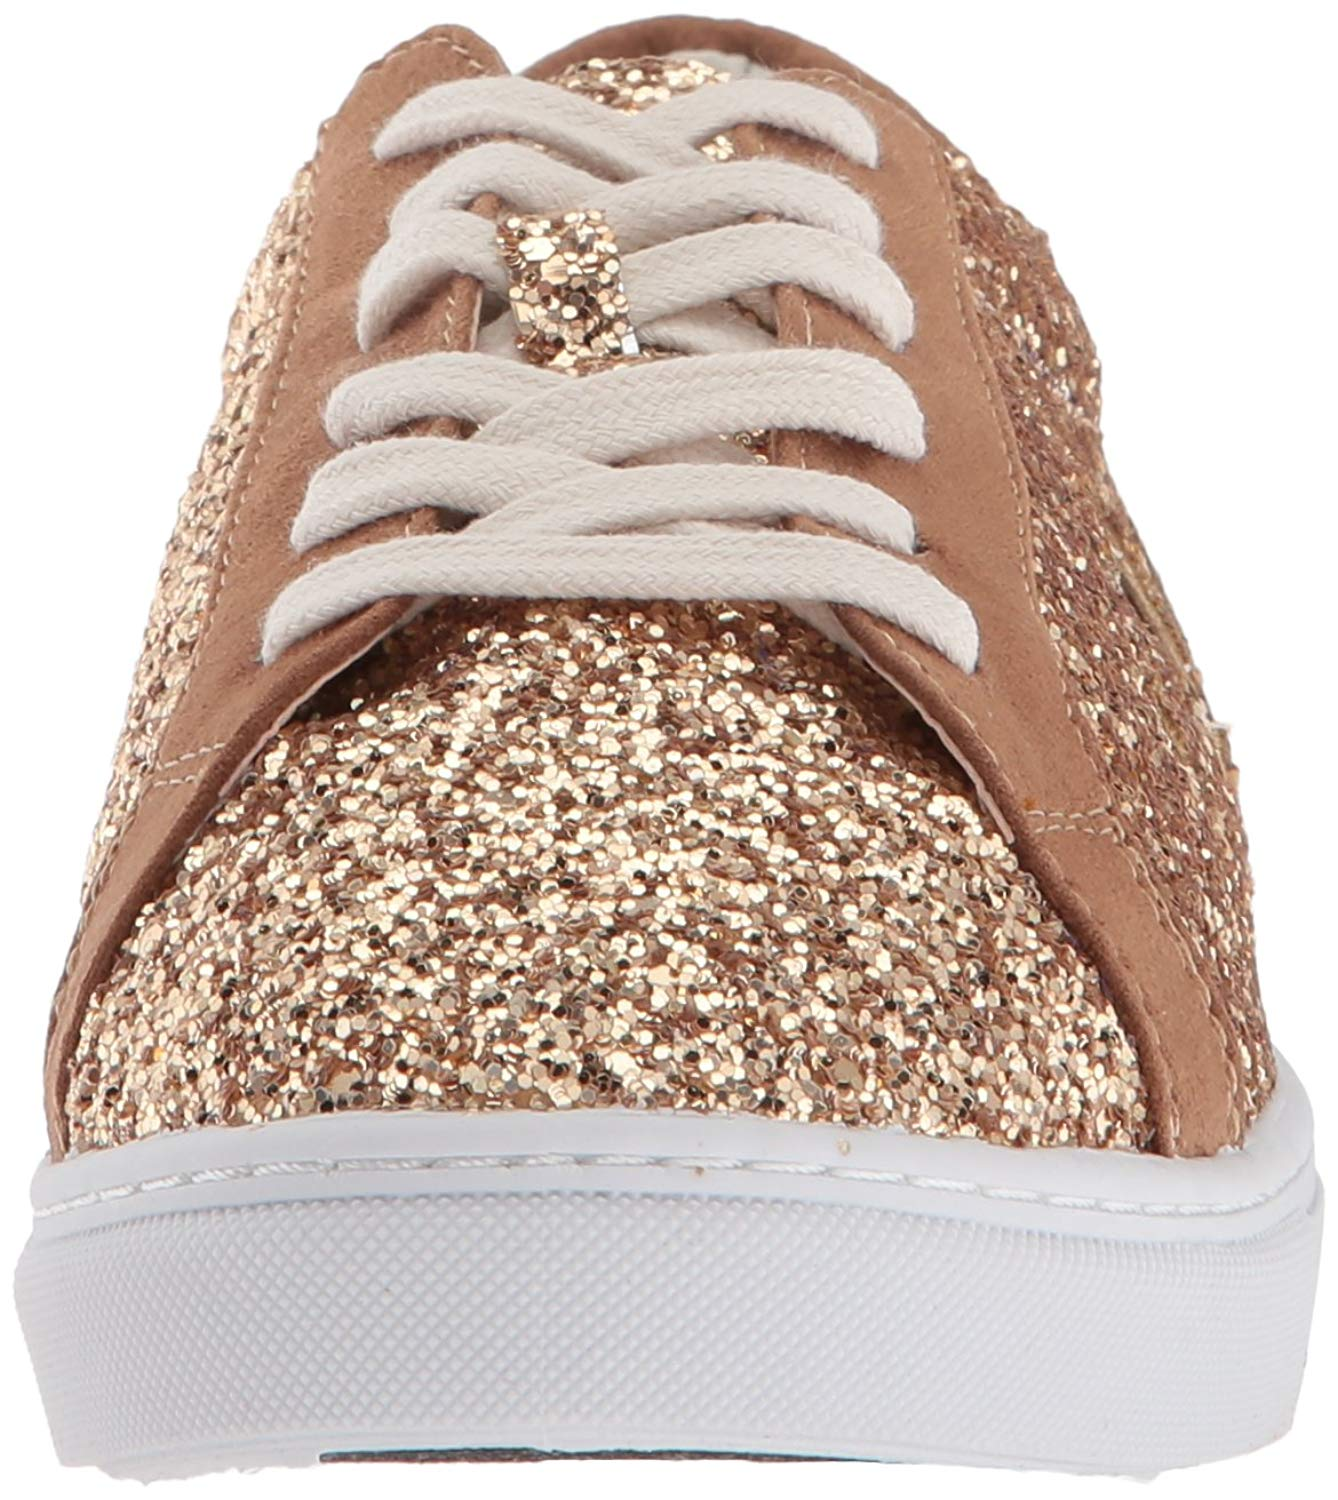 Circus by Sam Edelman Women's Vanellope-1 Sneaker - image 1 of 2